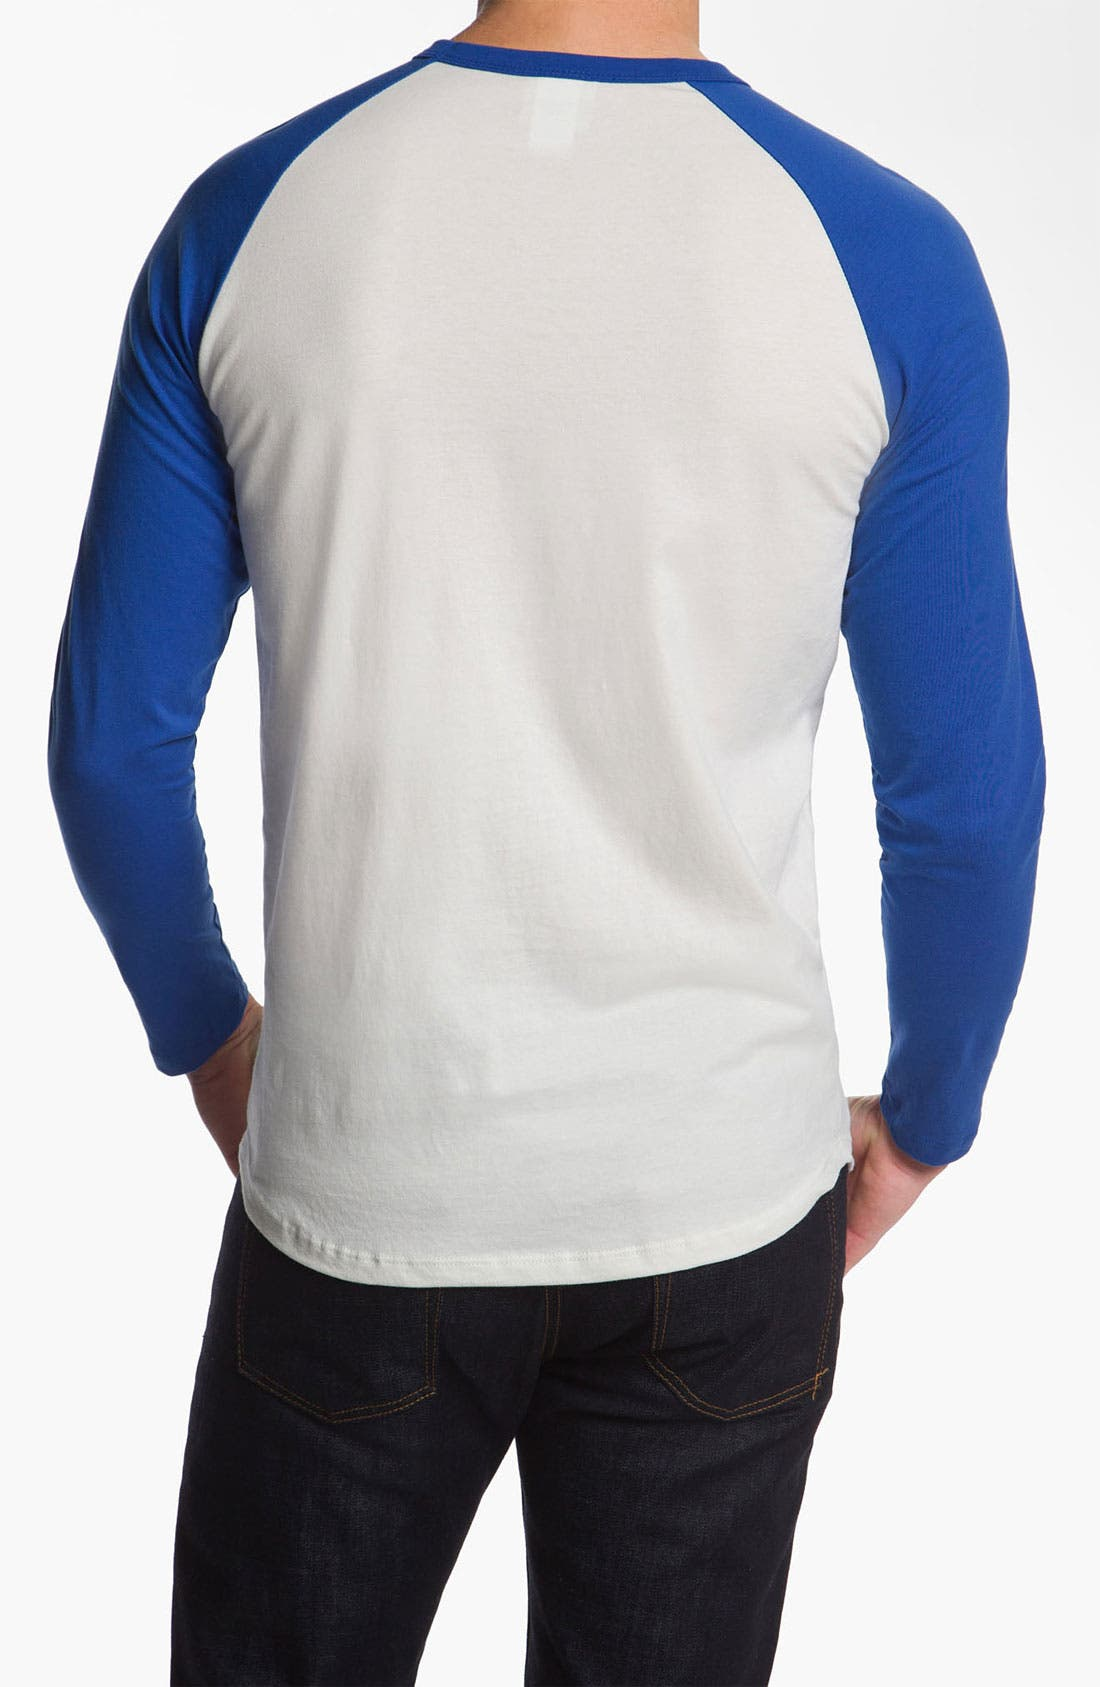 Alternate Image 2  - Junk Food 'New York Giants' Raglan Sleeve T-Shirt